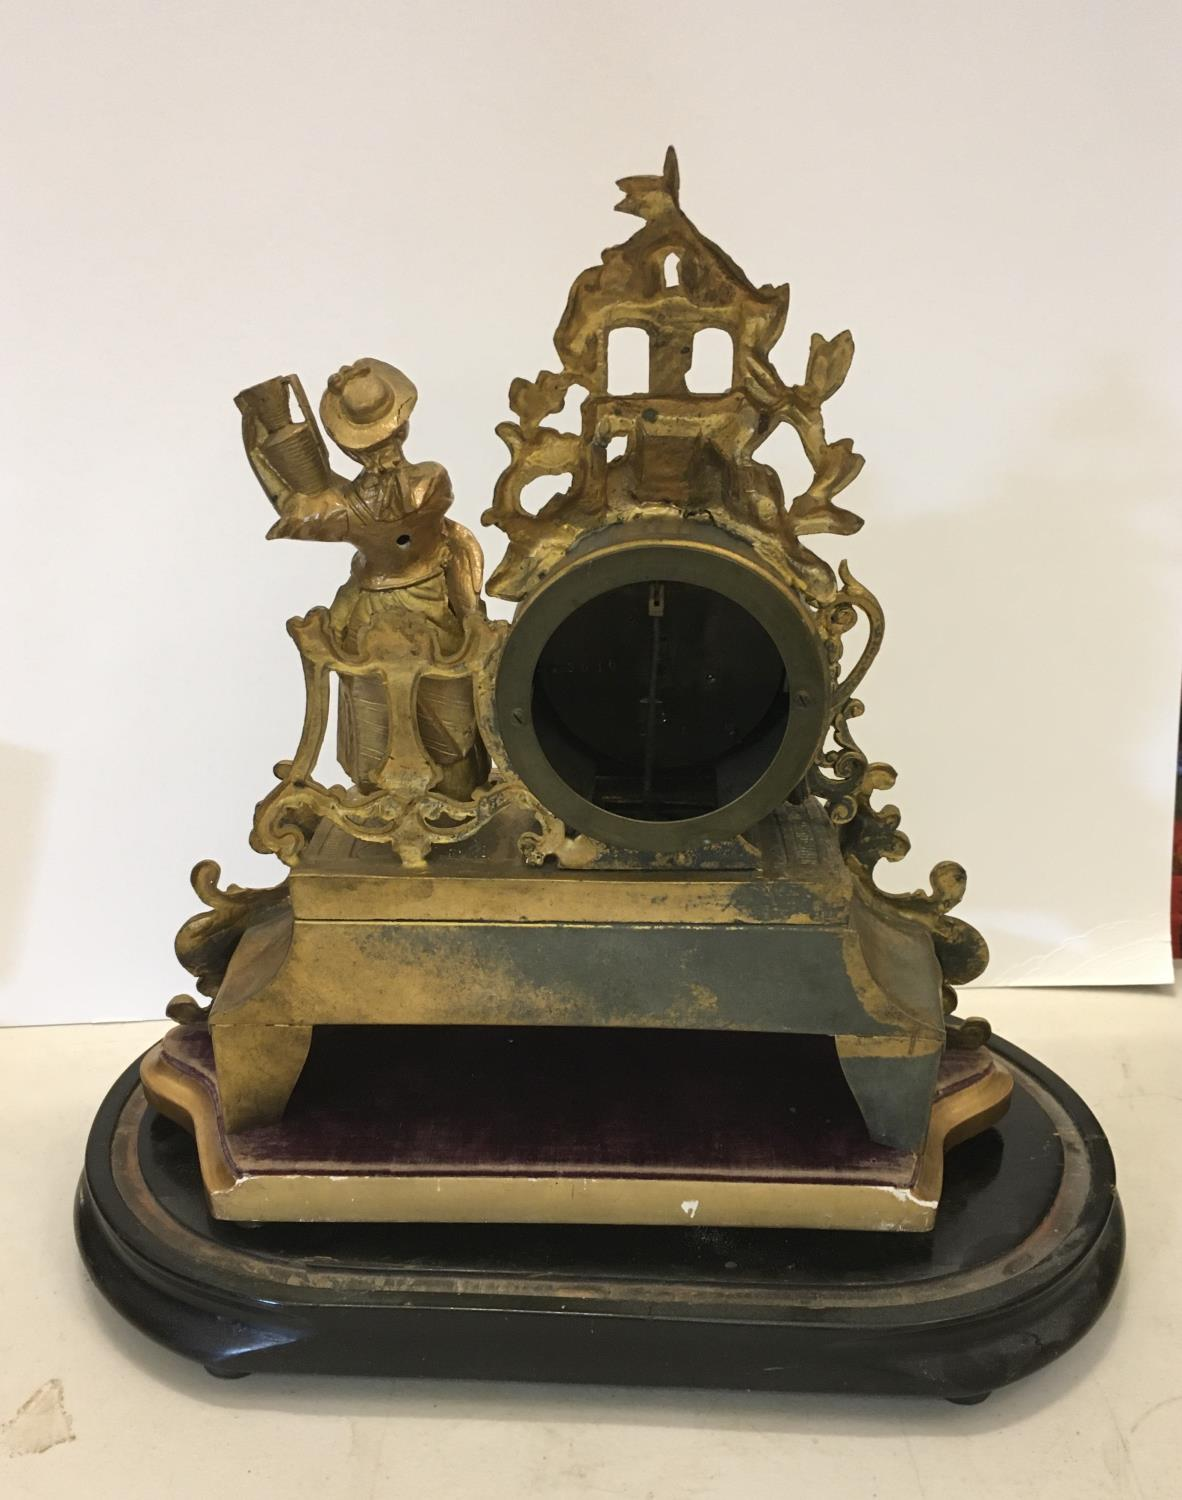 Gilt spelter mantle clock with figural Lady to the side, probably with Sevres plaques on original - Image 4 of 4